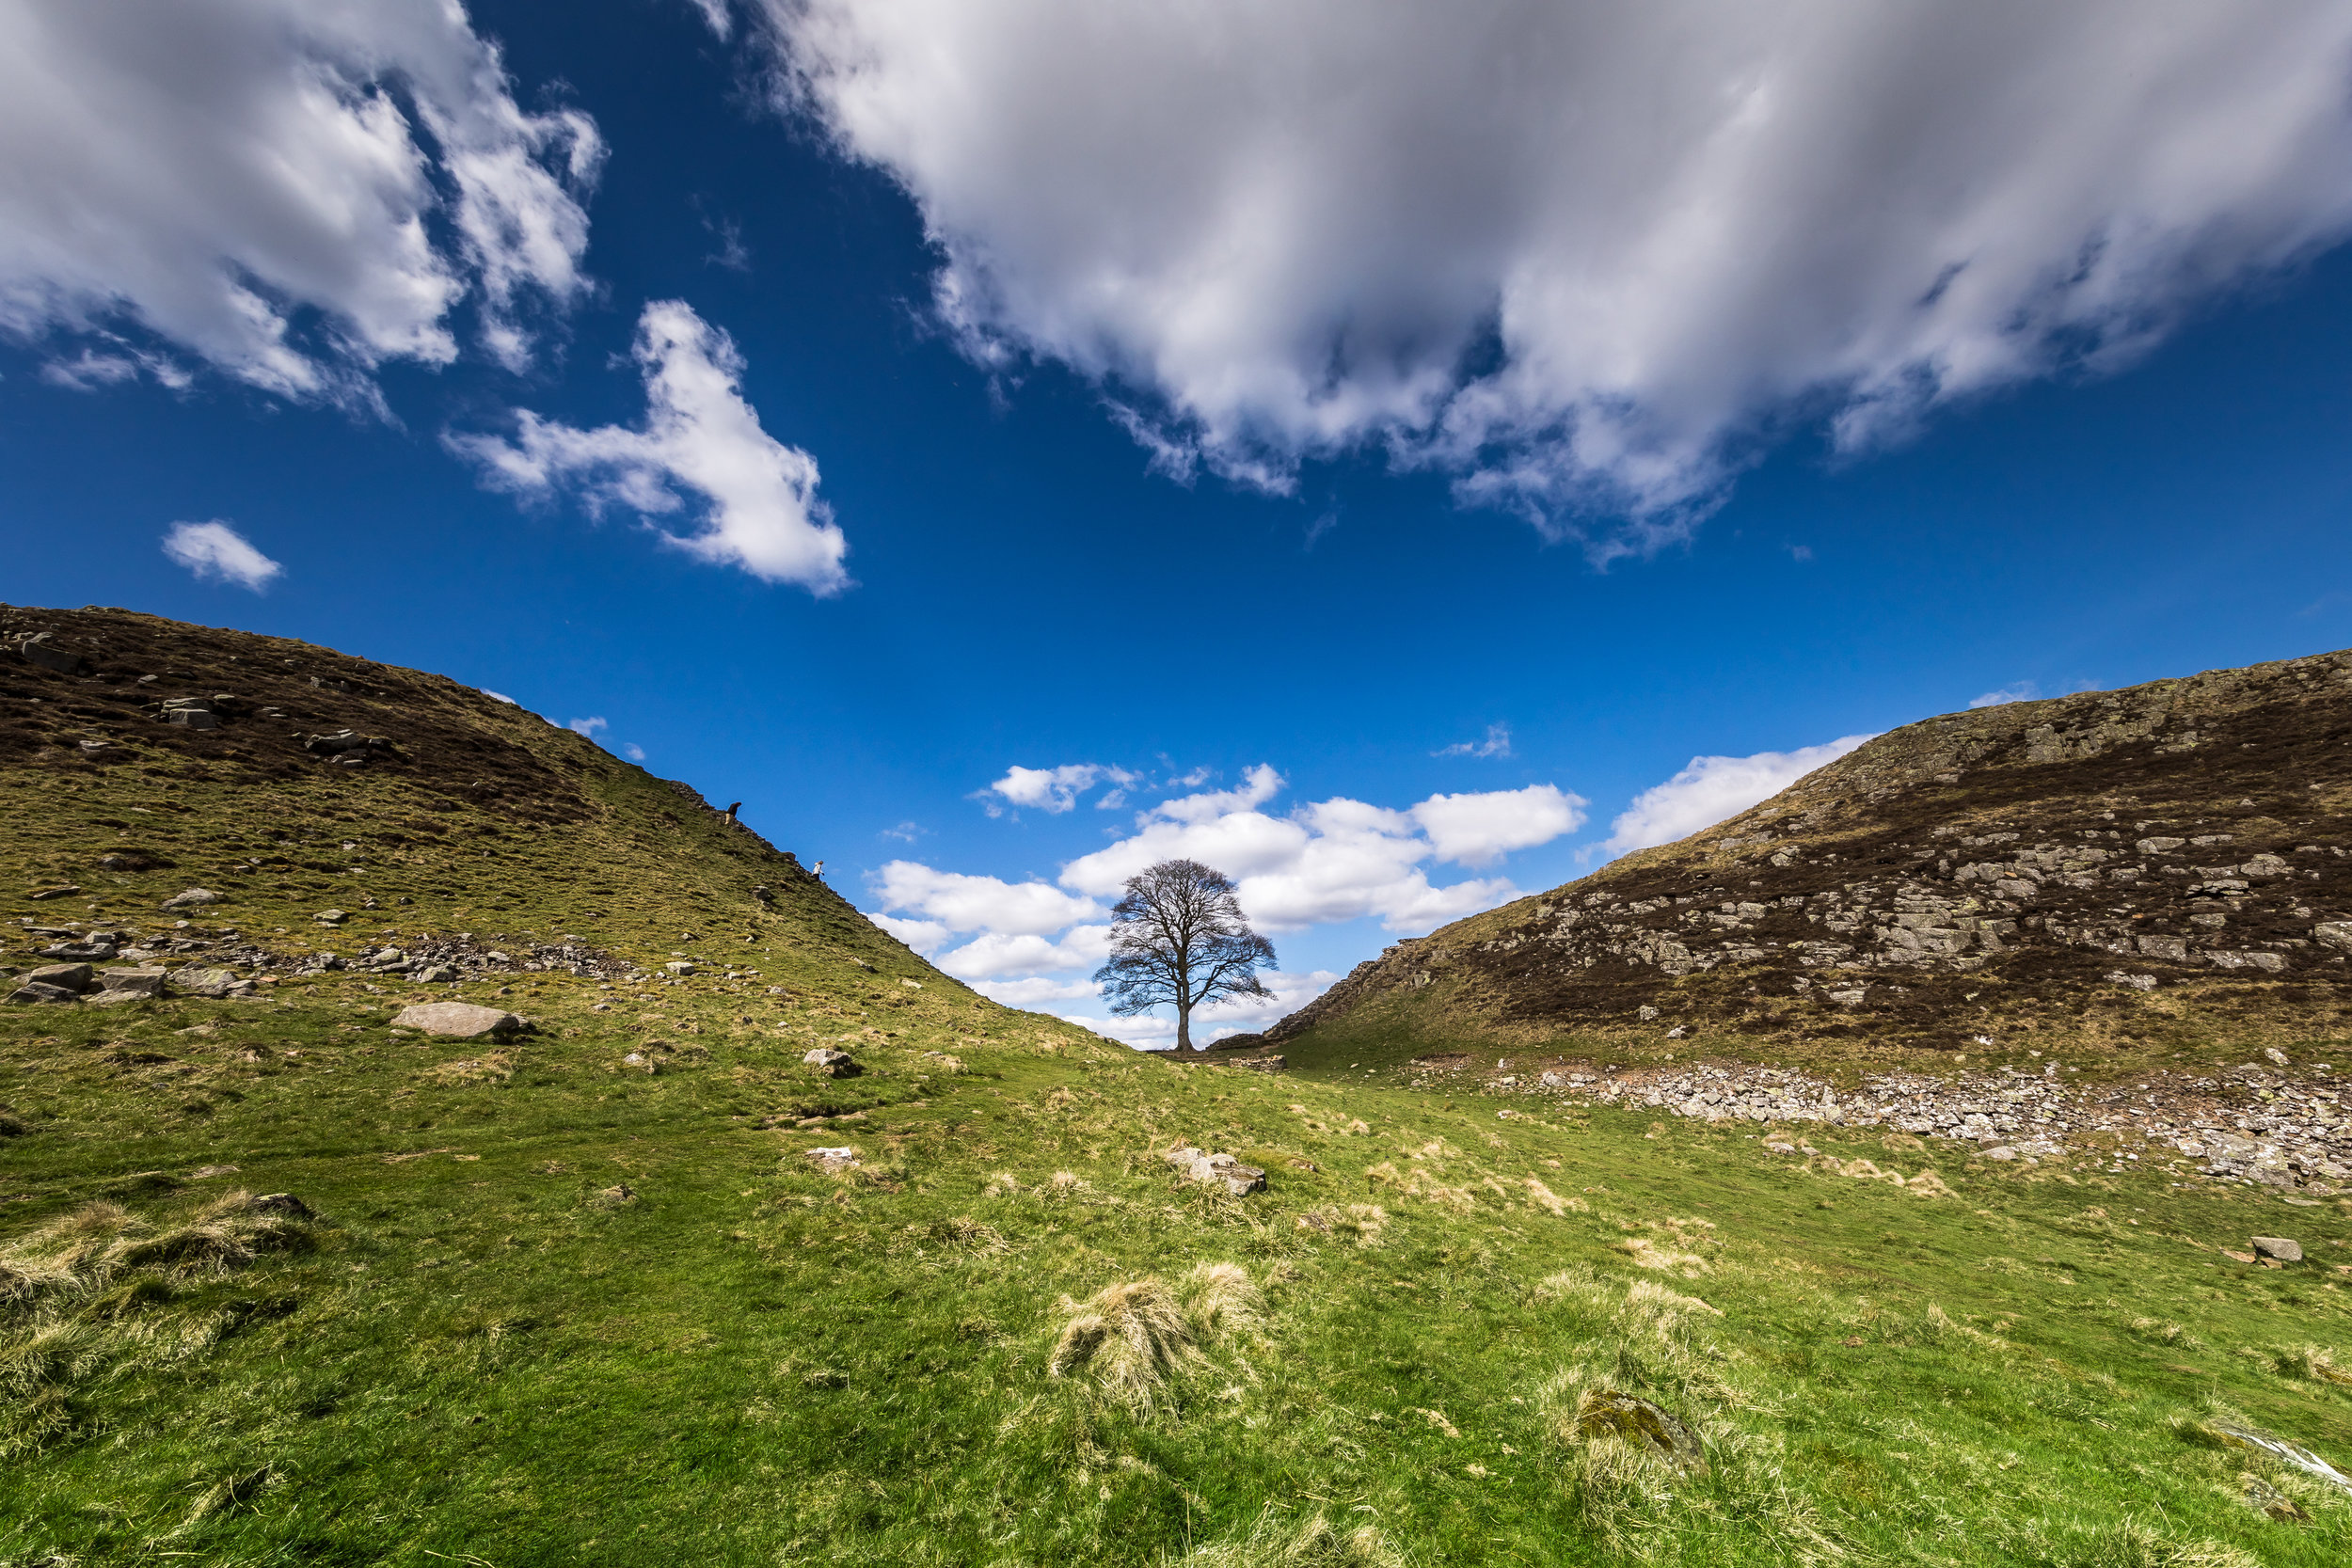 sycamore gap ©jennifer bailey 2018